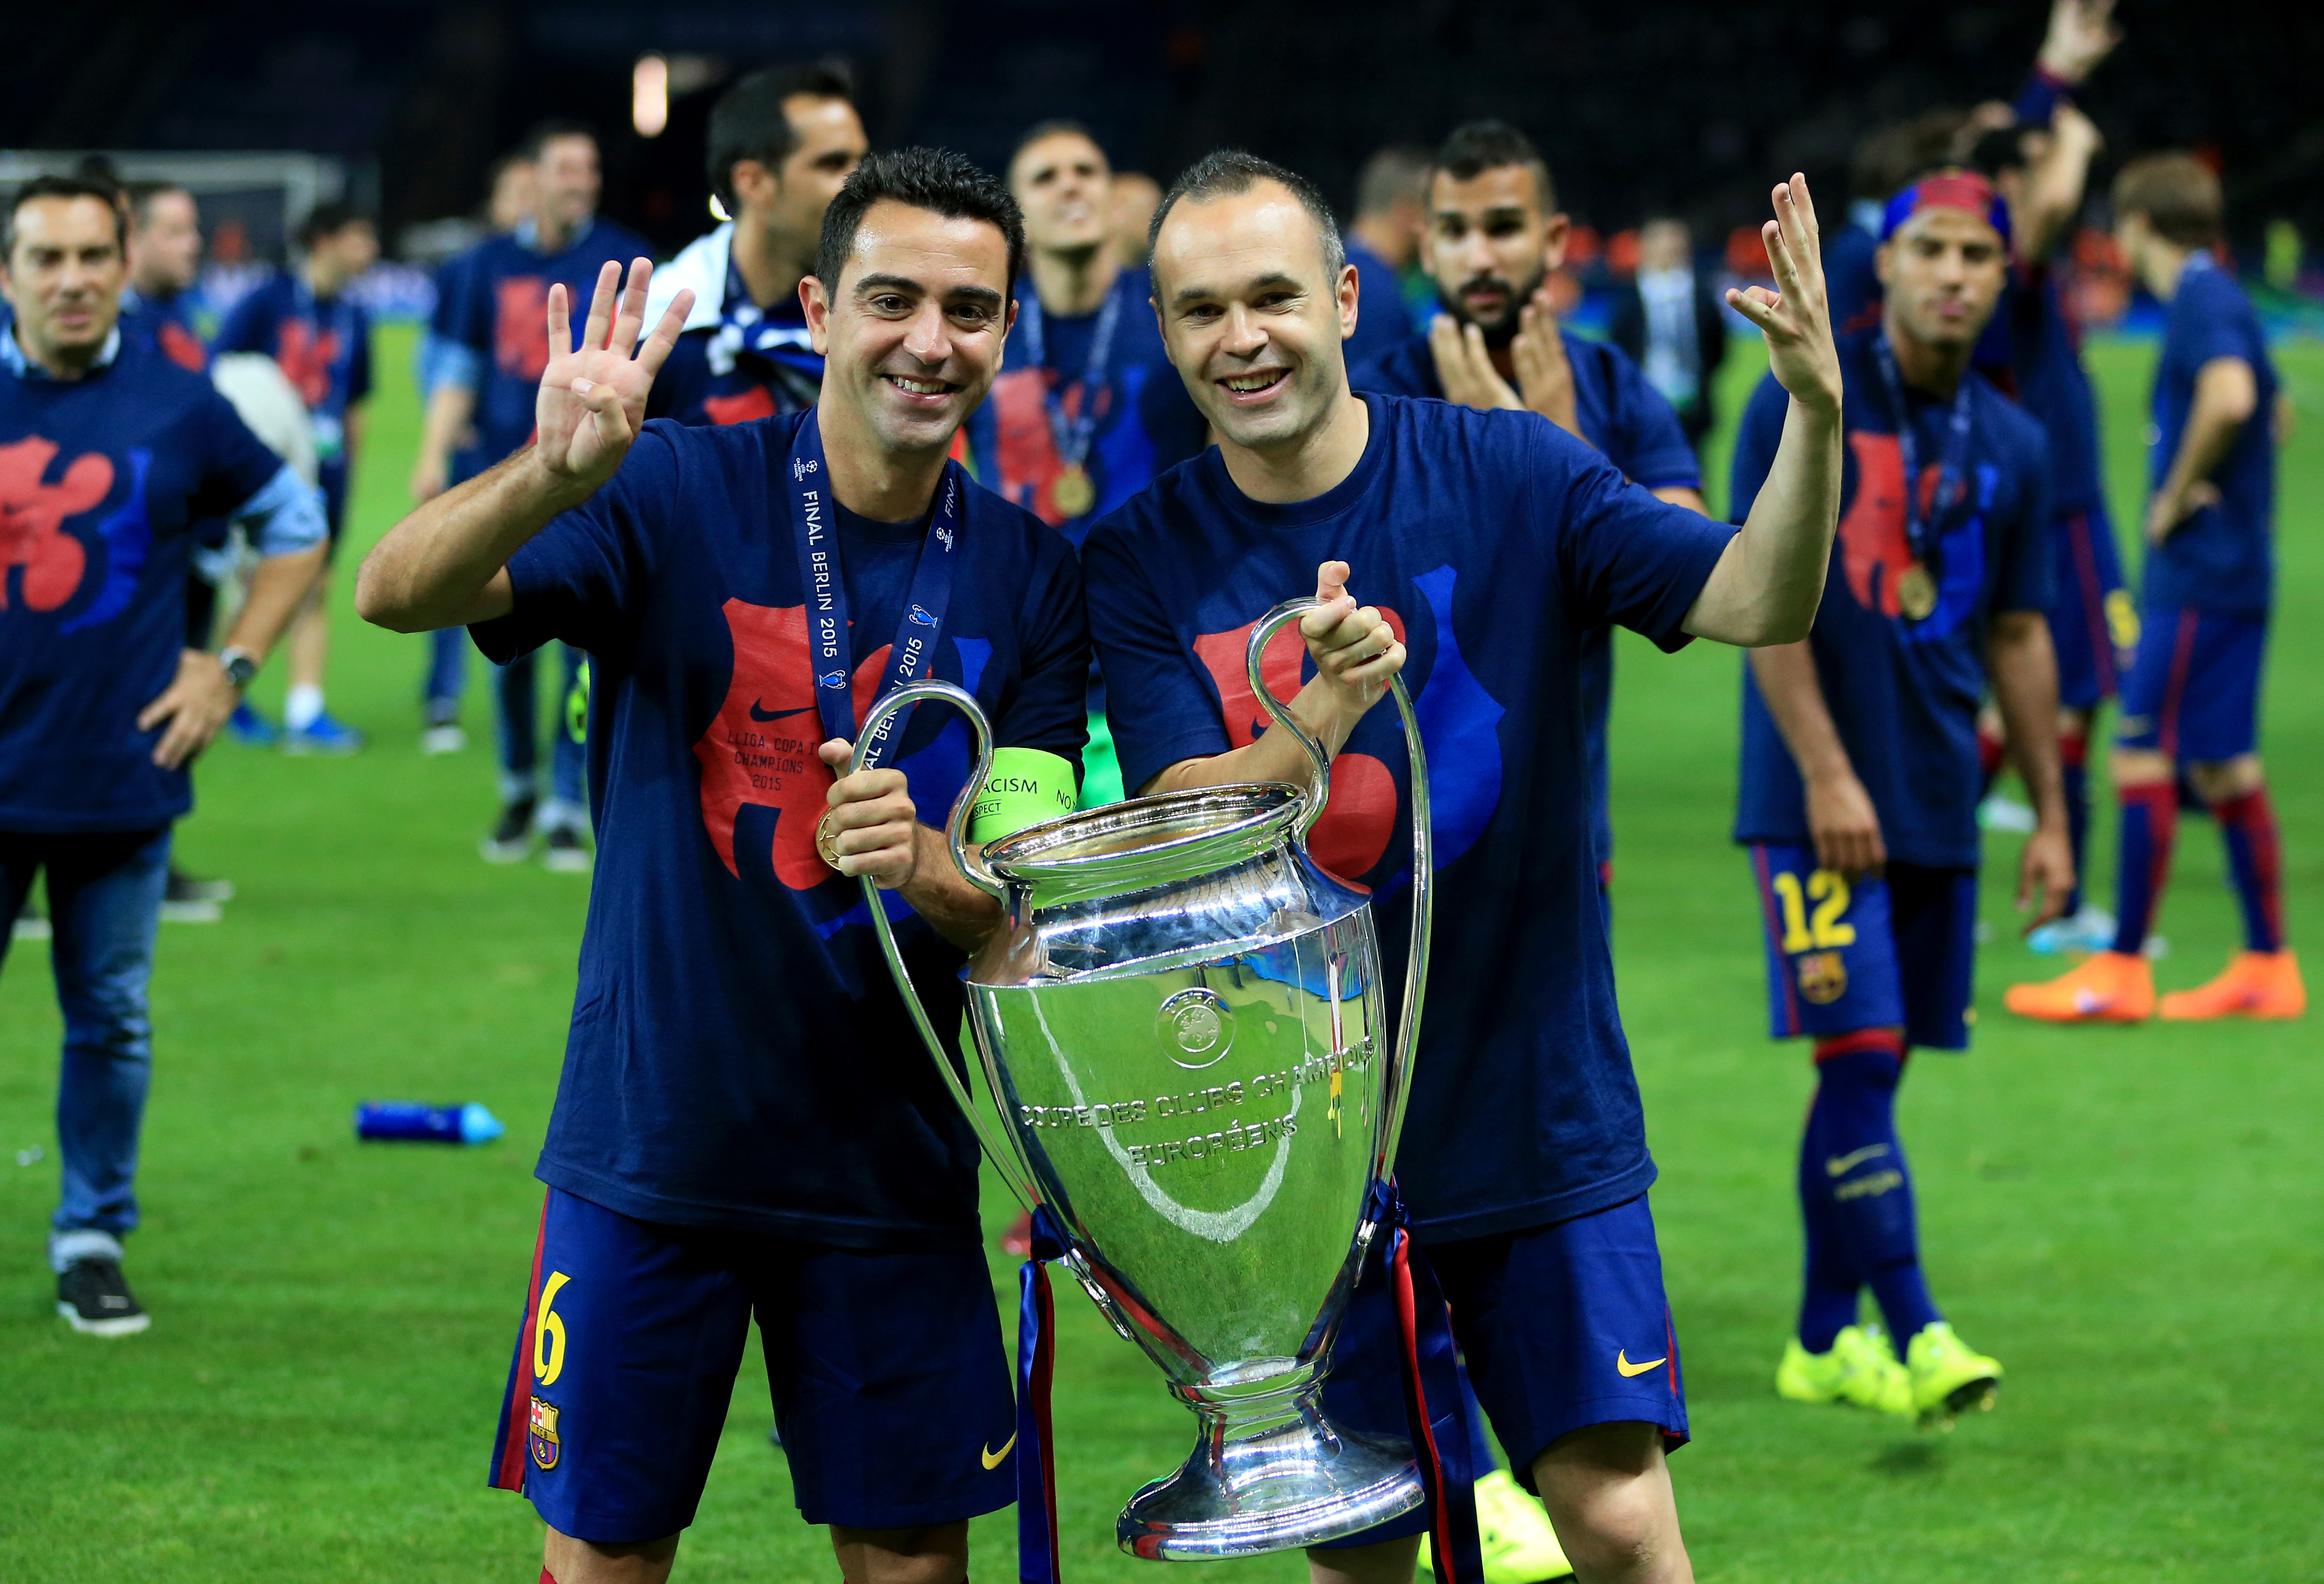 It's only right the Barca pair share the title with 29% each. Image: PA Images